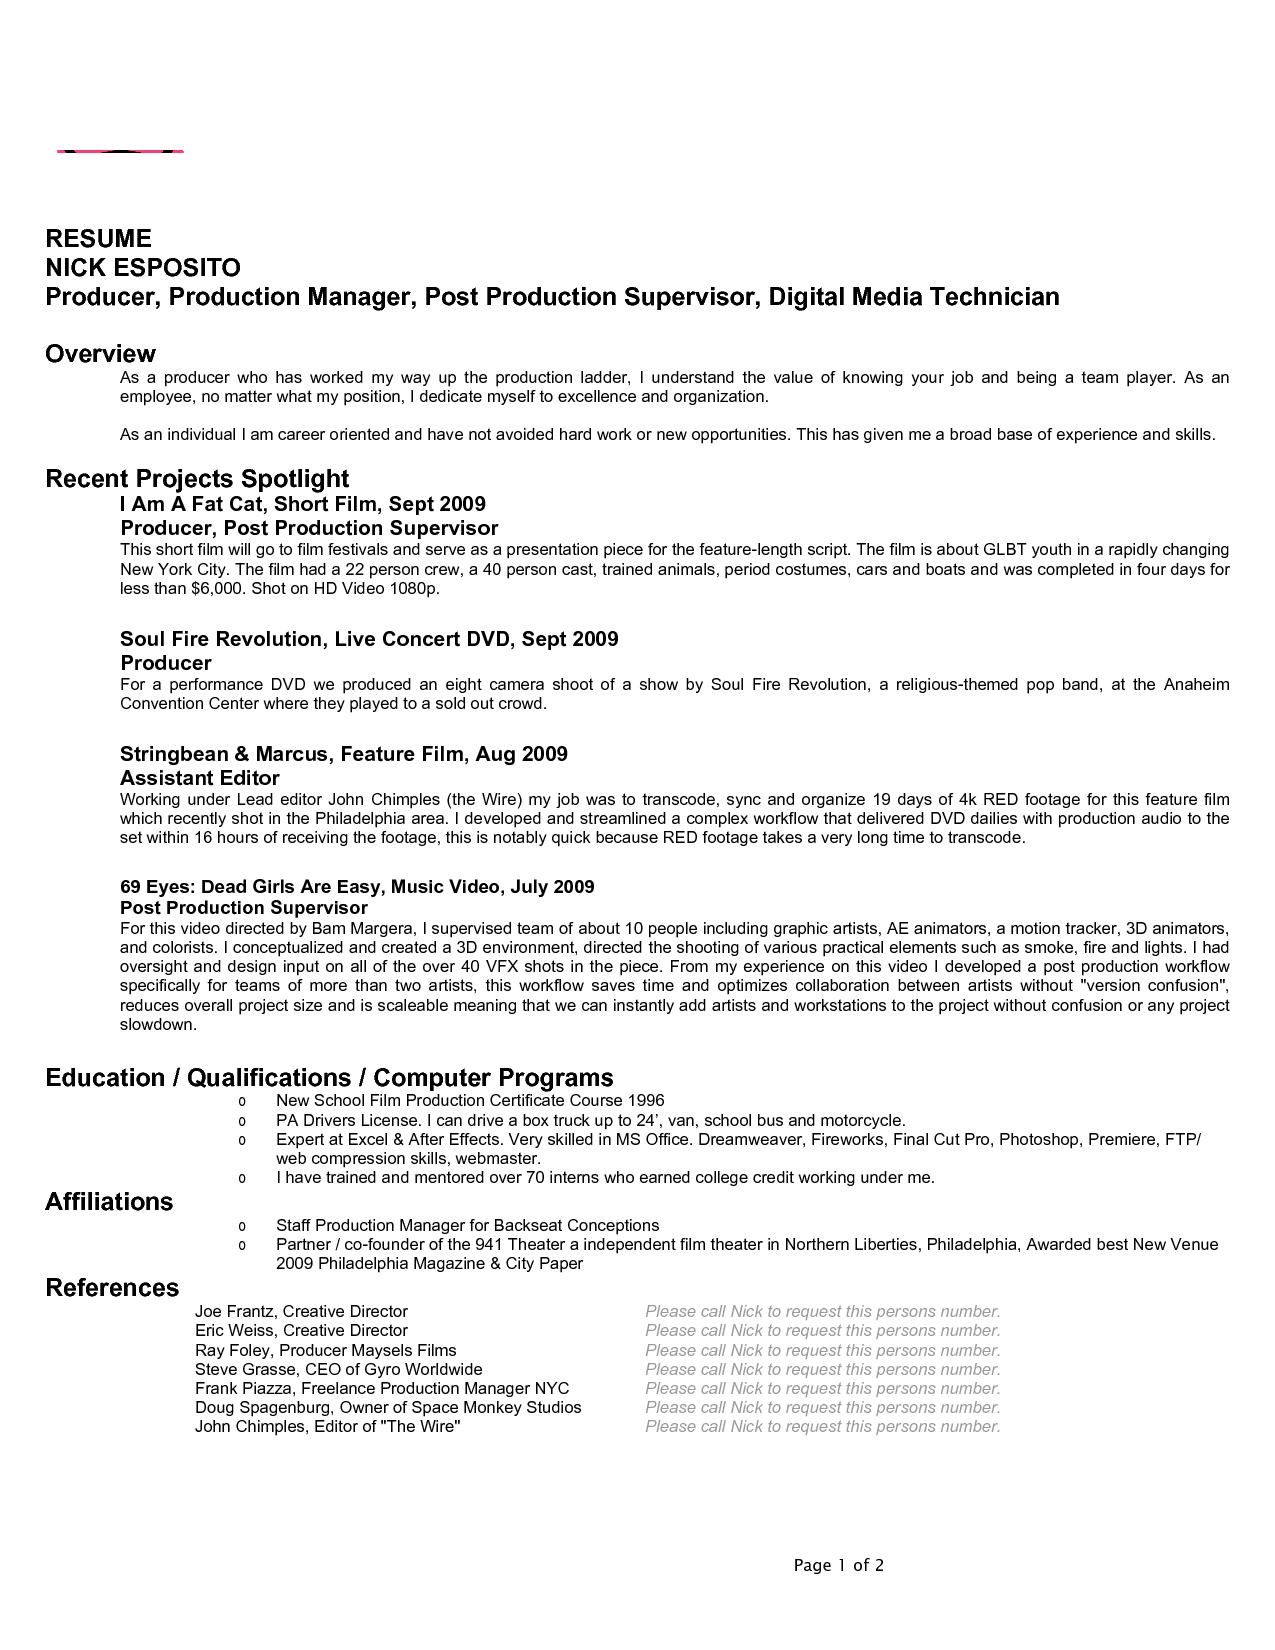 Production Manager Resume Television Http Www Resumecareer Info Production Manager Resume Television 27